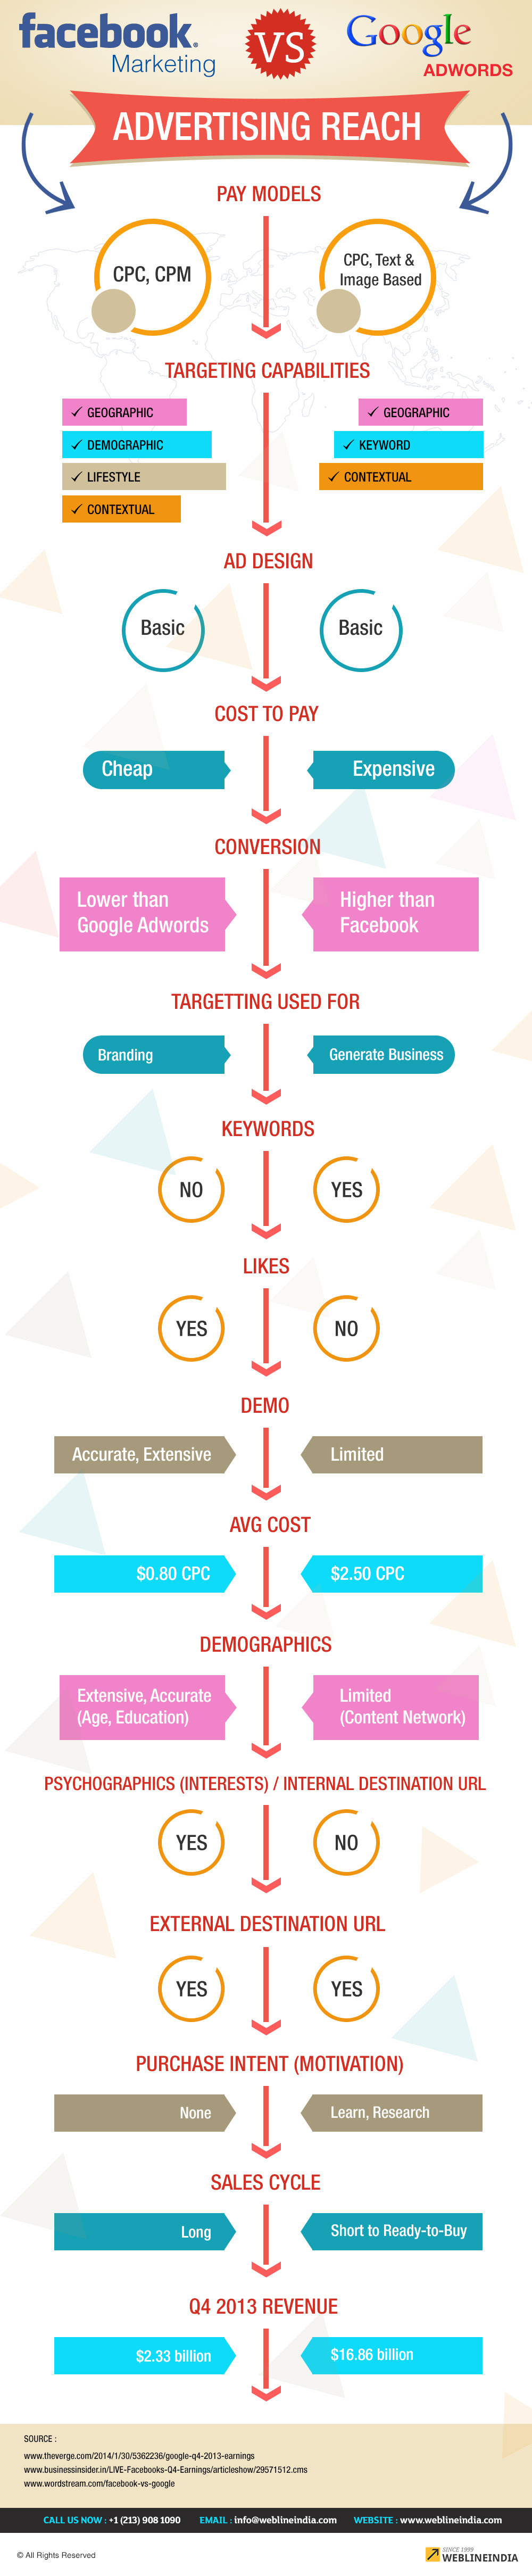 Infographic: Facebook Marketing vs Google Adwords #infographic